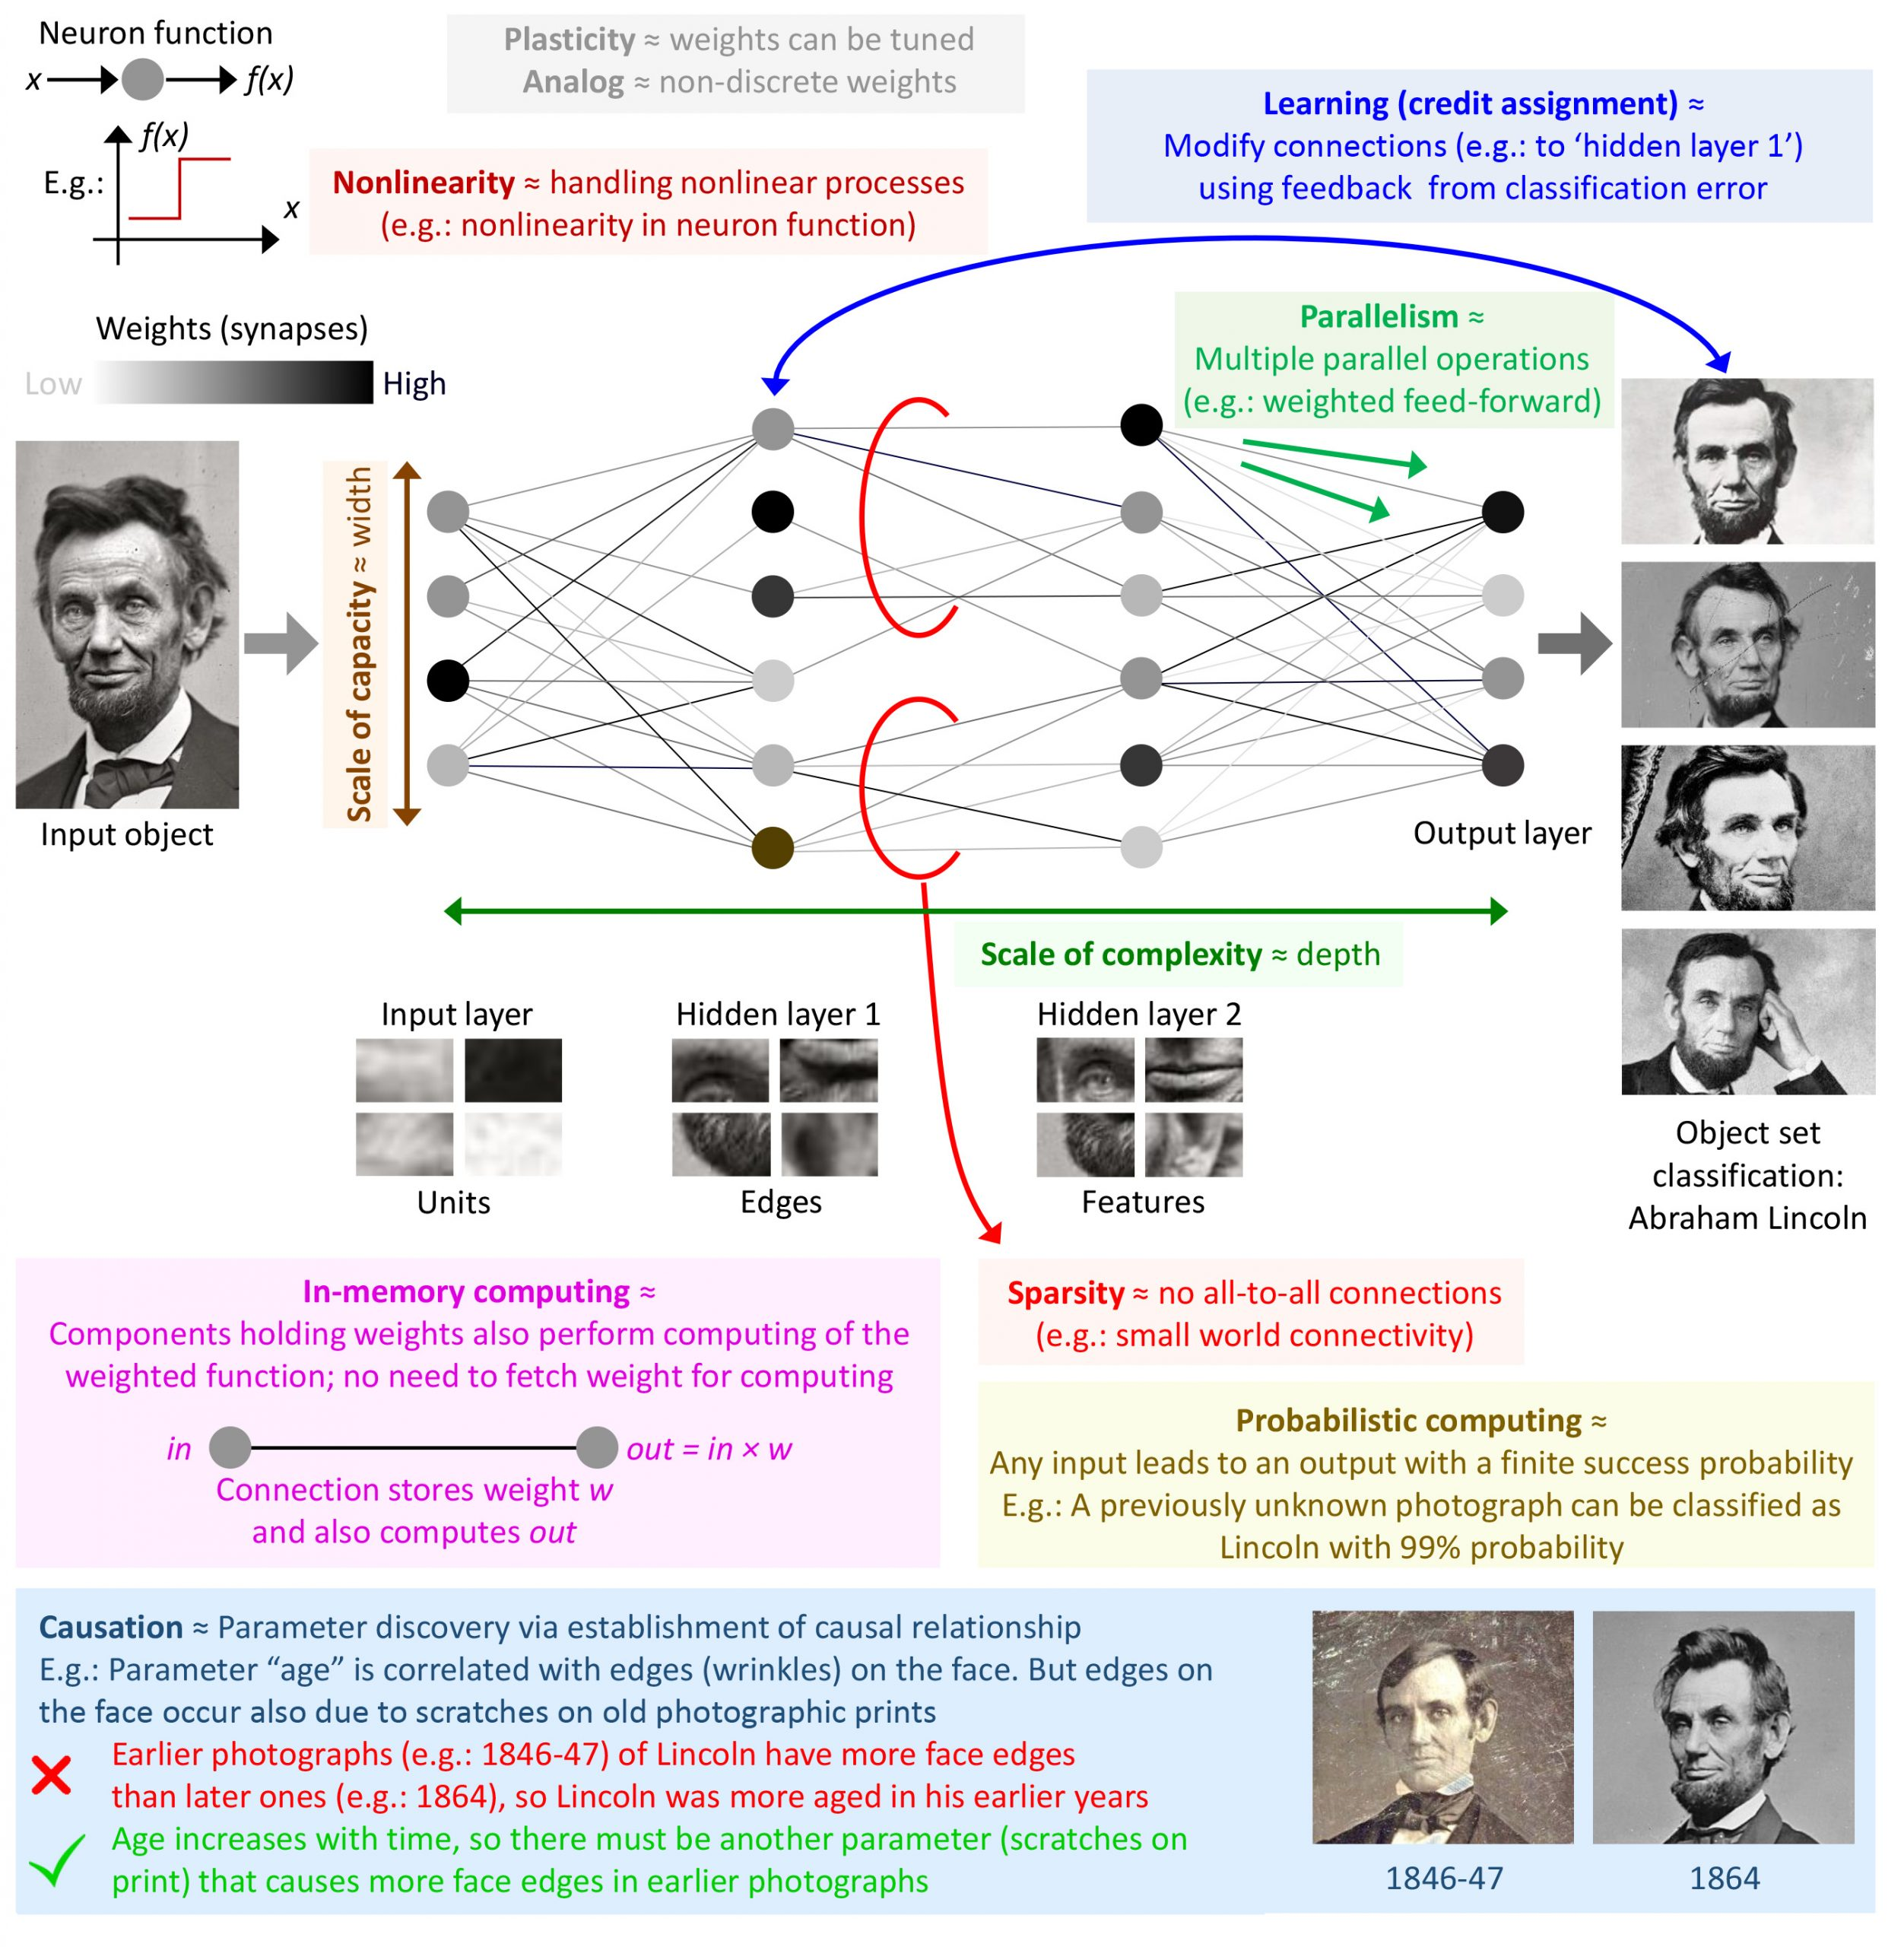 A deep neural network annotated with both existing and additional attributes, such as causation, that can be described in the context of neuromorphic computing systems. CREDIT: Jack D. Kendall and Suhas Kumar